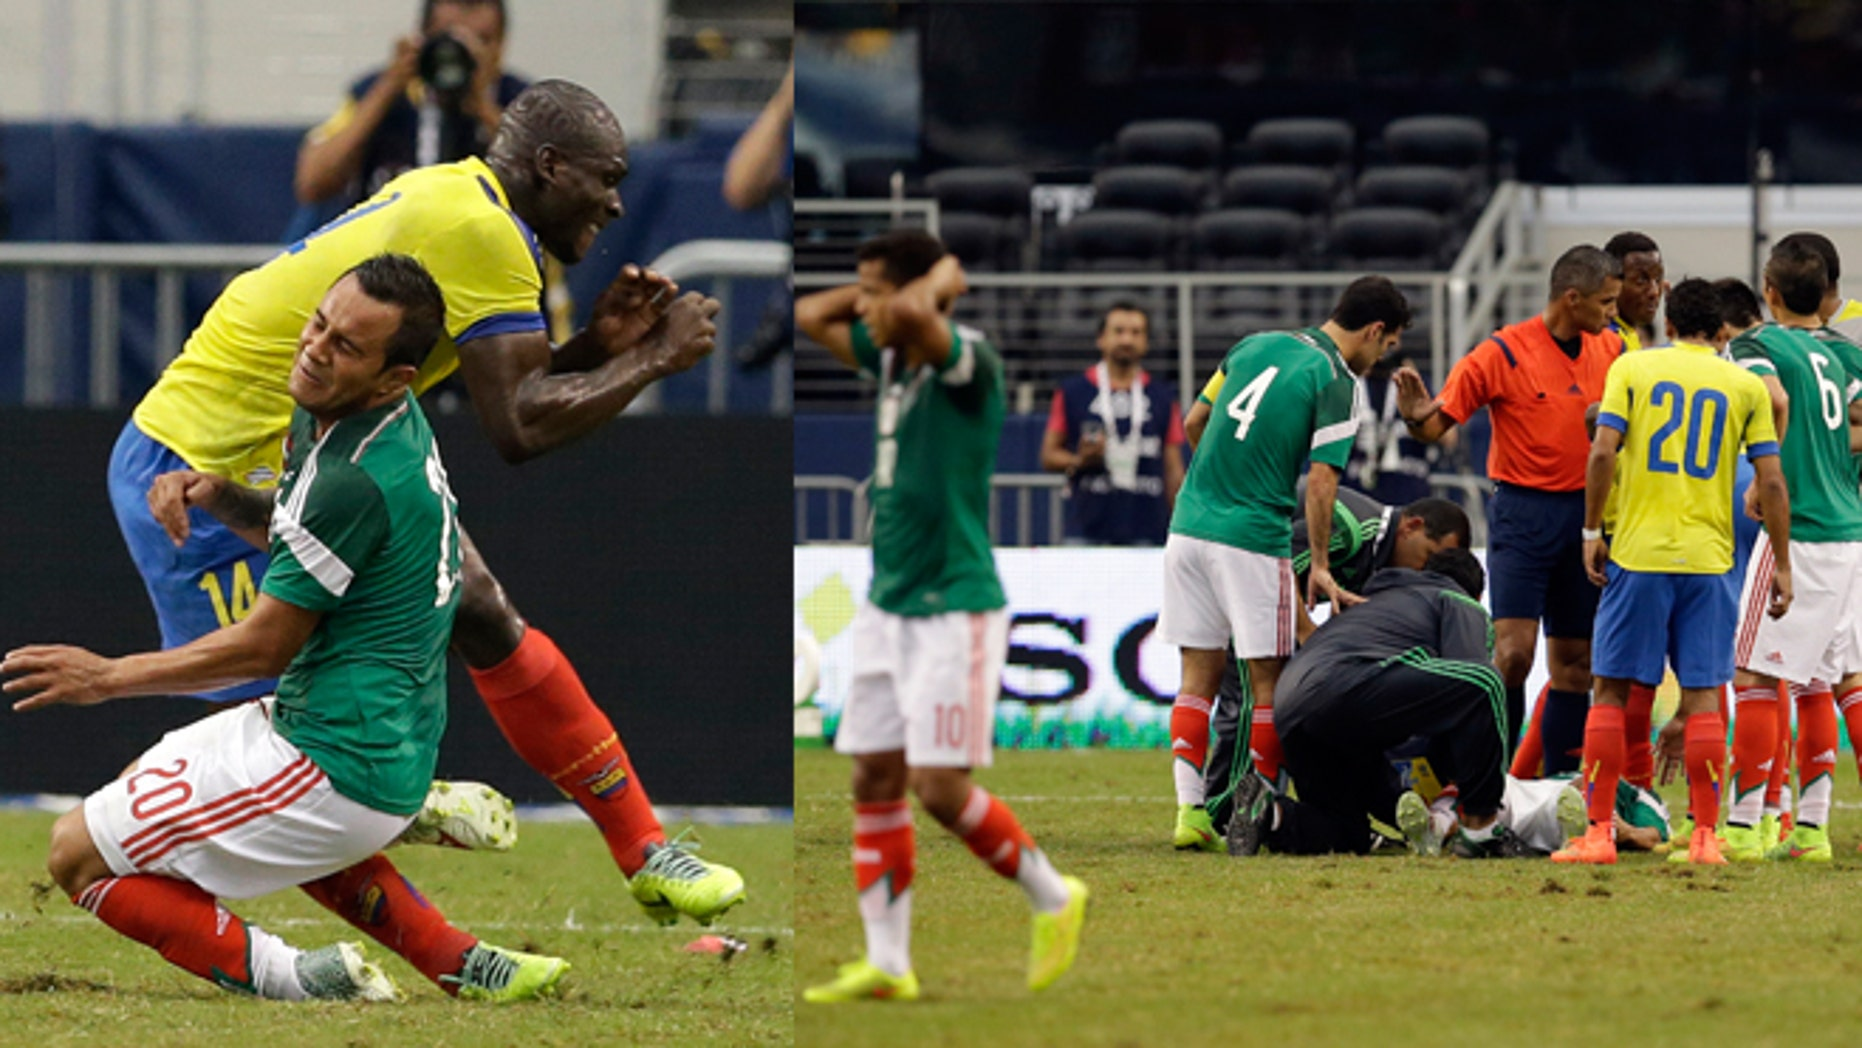 Mexico's Luis Montes collides with Ecuador's Segundo Castillo, rear, as the two were competing for the ball during the first half of a friendly soccer match, Saturday, May 31, 2014, in Arlington, Texas.